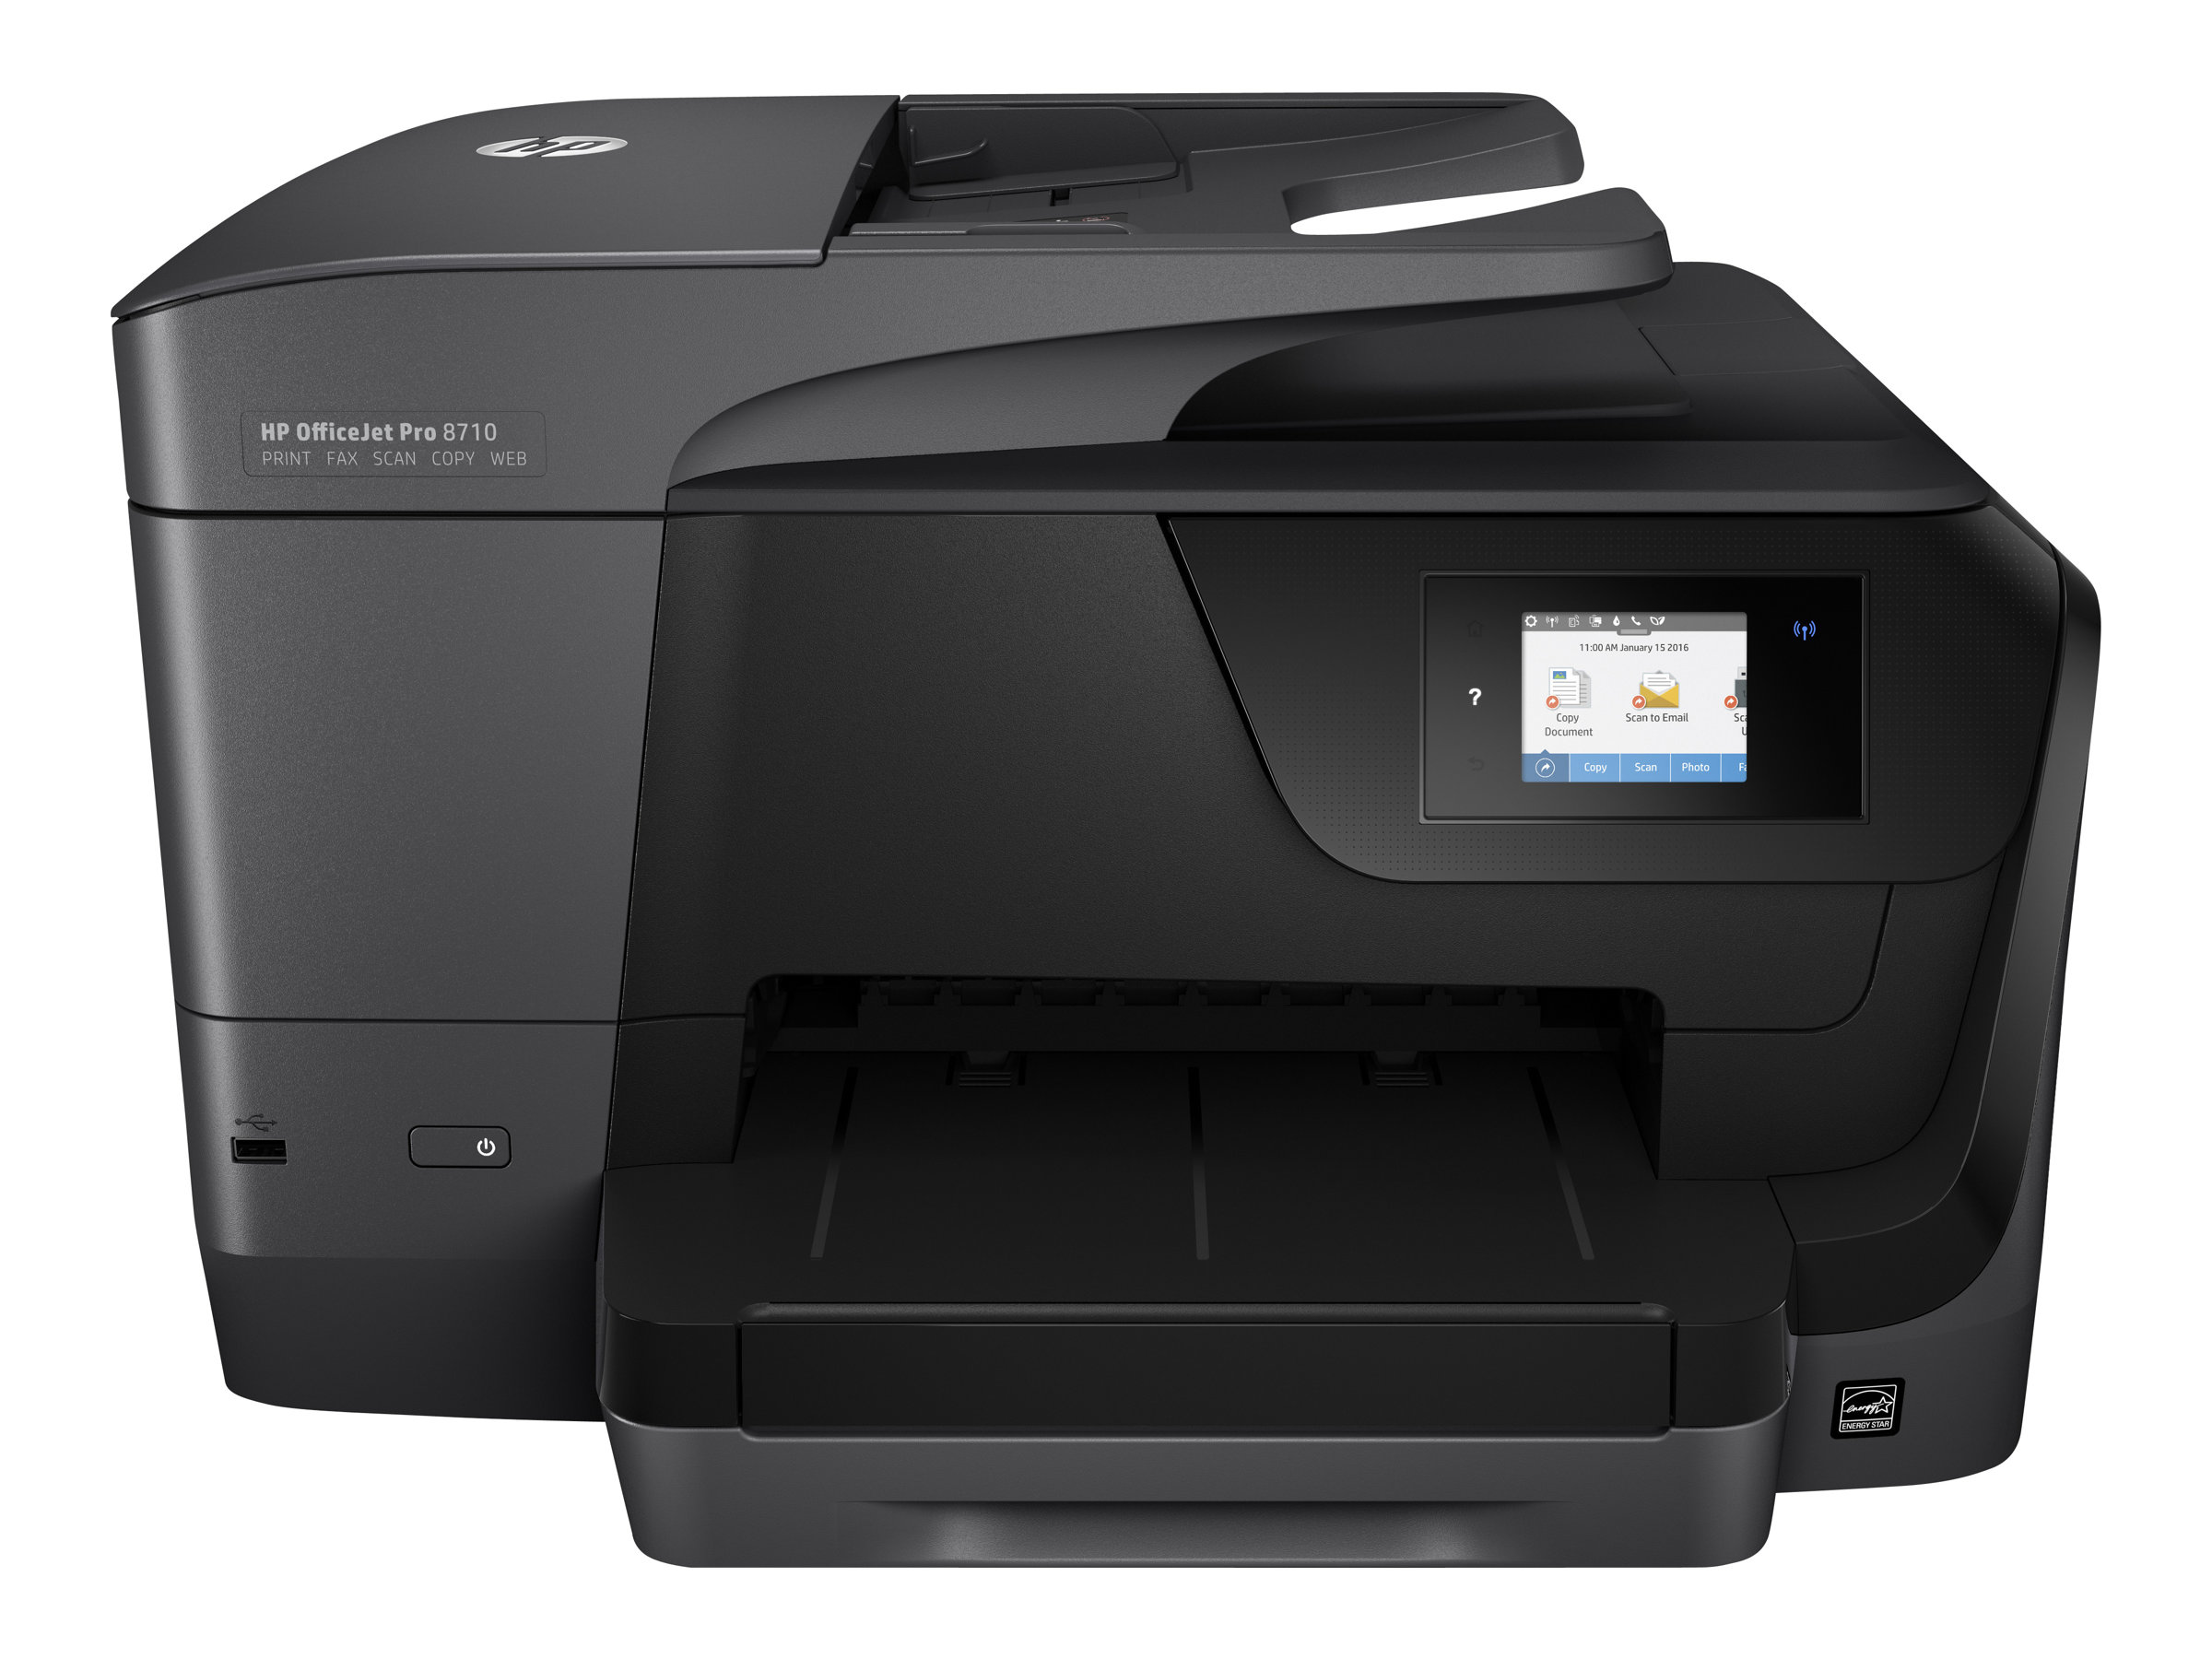 HP Officejet Pro 8710 All-In-One Printer ($199.95 - $70 Instant Rebate = $129.95 Expires 3 14 2017), M9L66A#B1H